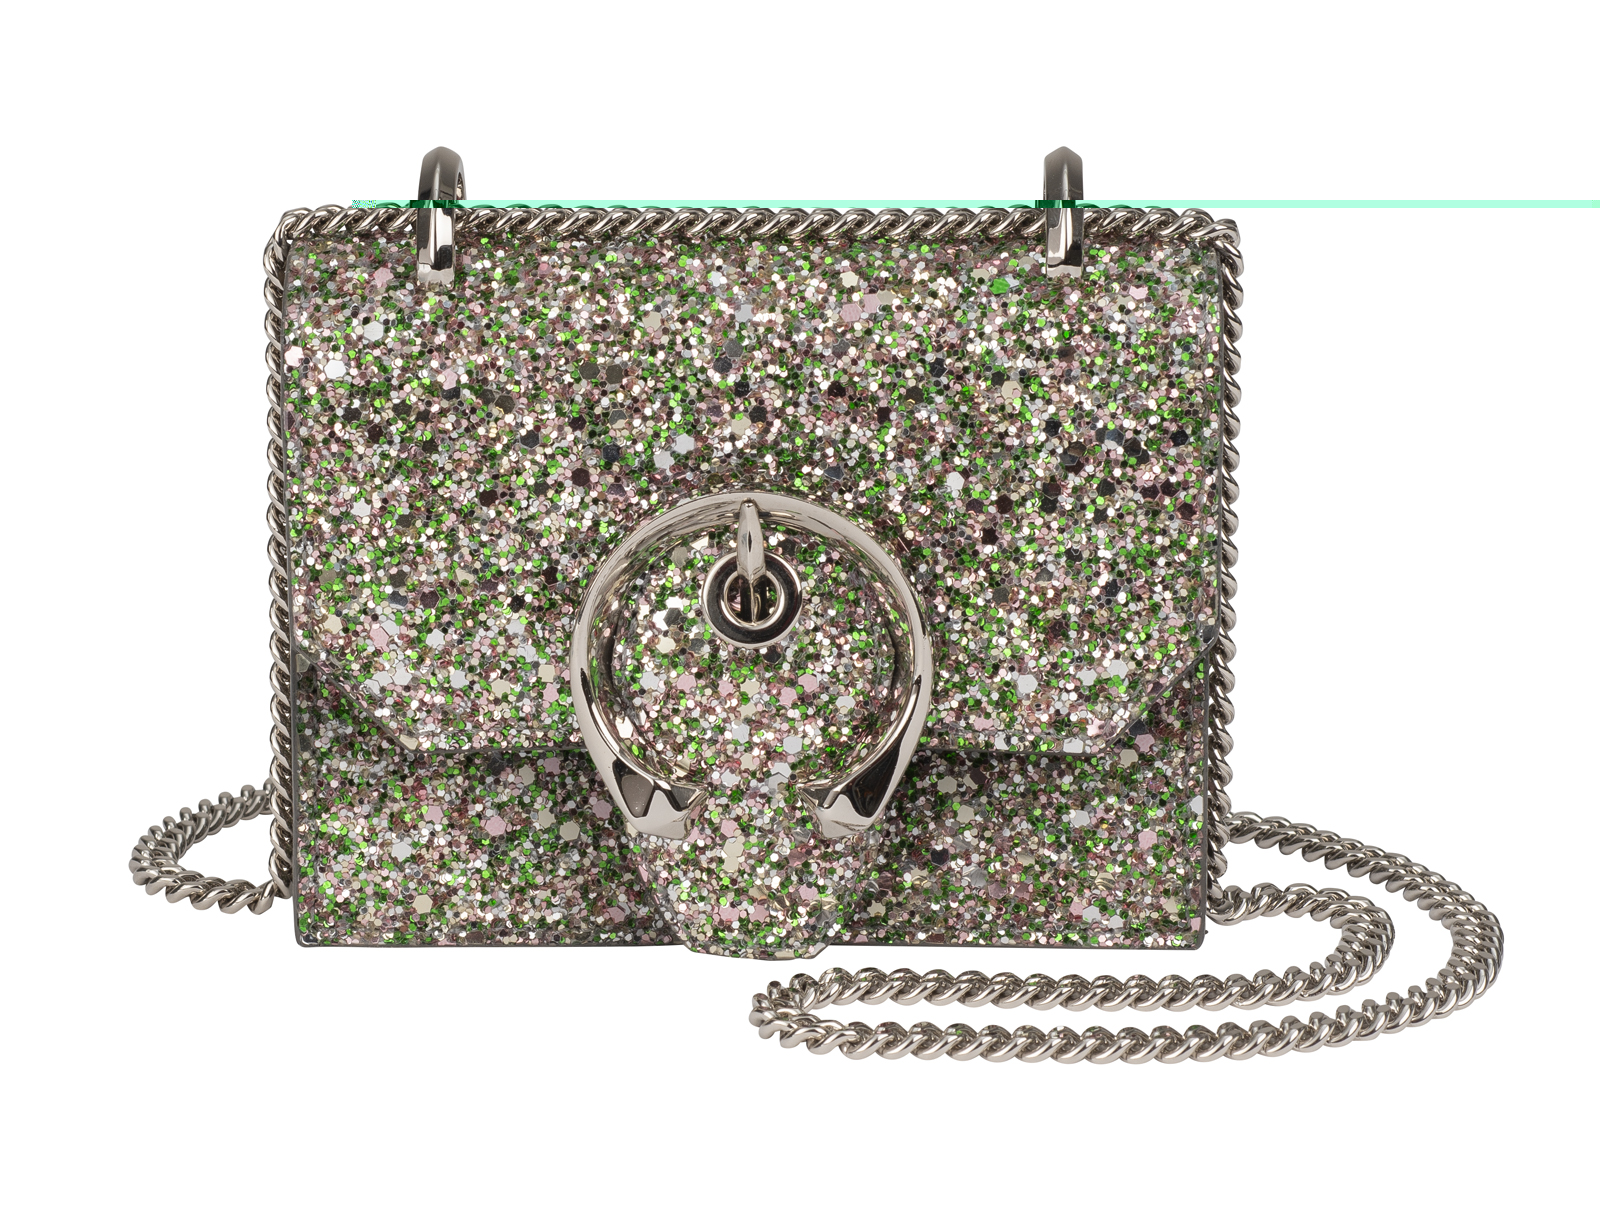 Jimmy Choo MINI PARIS – PEPPERMINT GLITTER